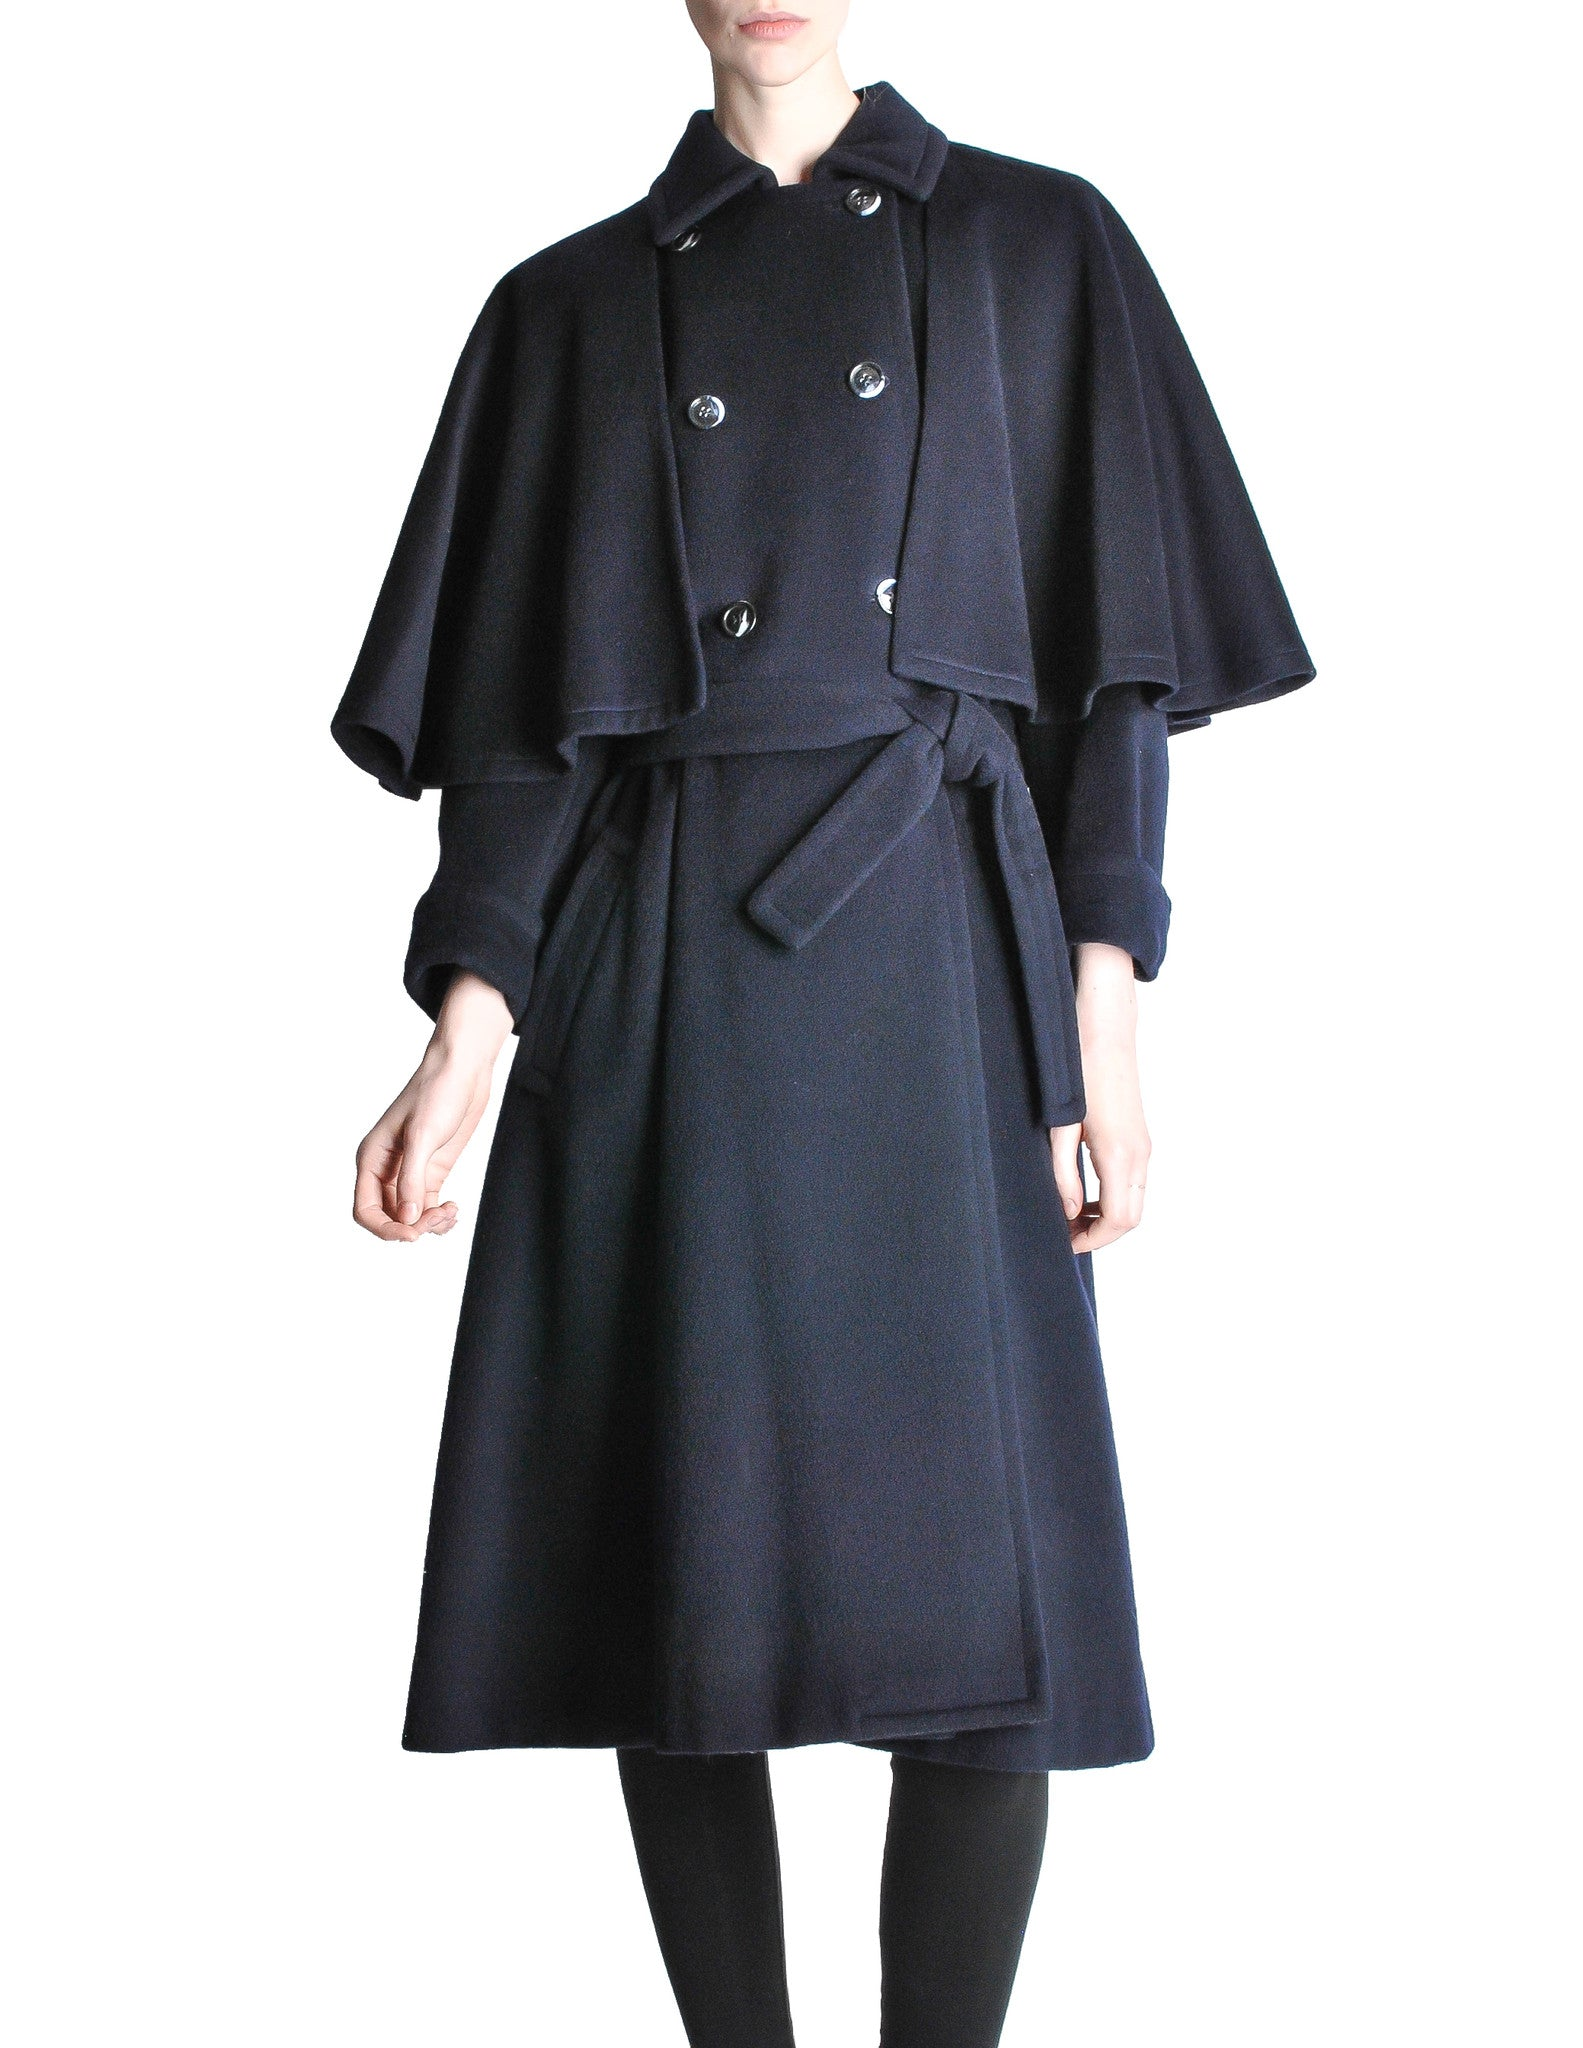 Saint Laurent Rive Gauche Vintage Navy Blue Wool Cape Trench Coat - Amarcord Vintage Fashion  - 1